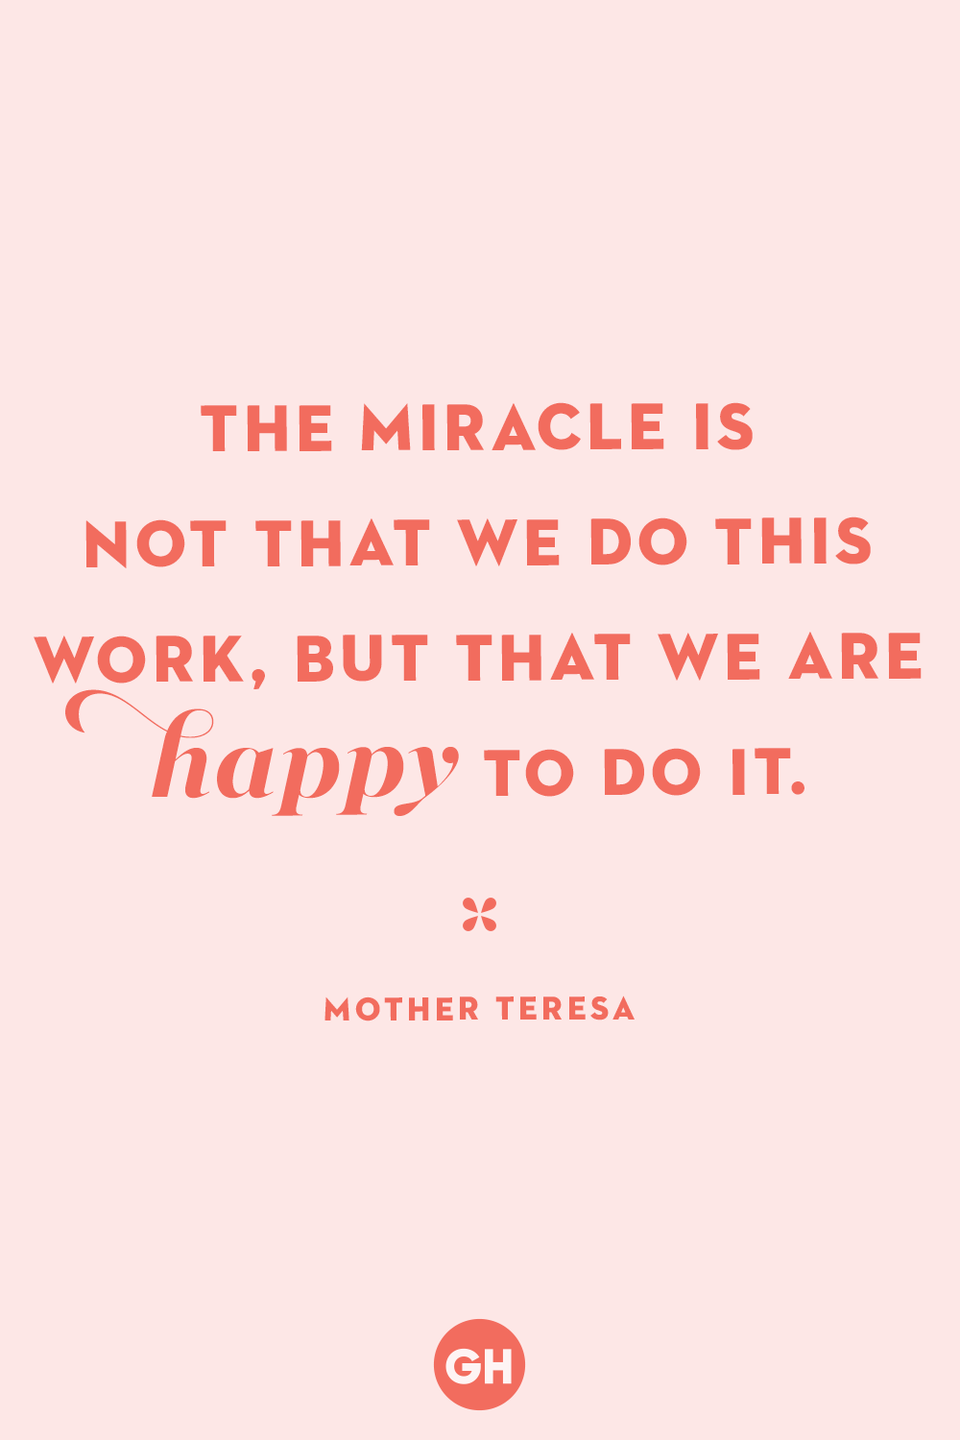 <p>The miracle is not that we do this work, but that we are happy to do it.</p>